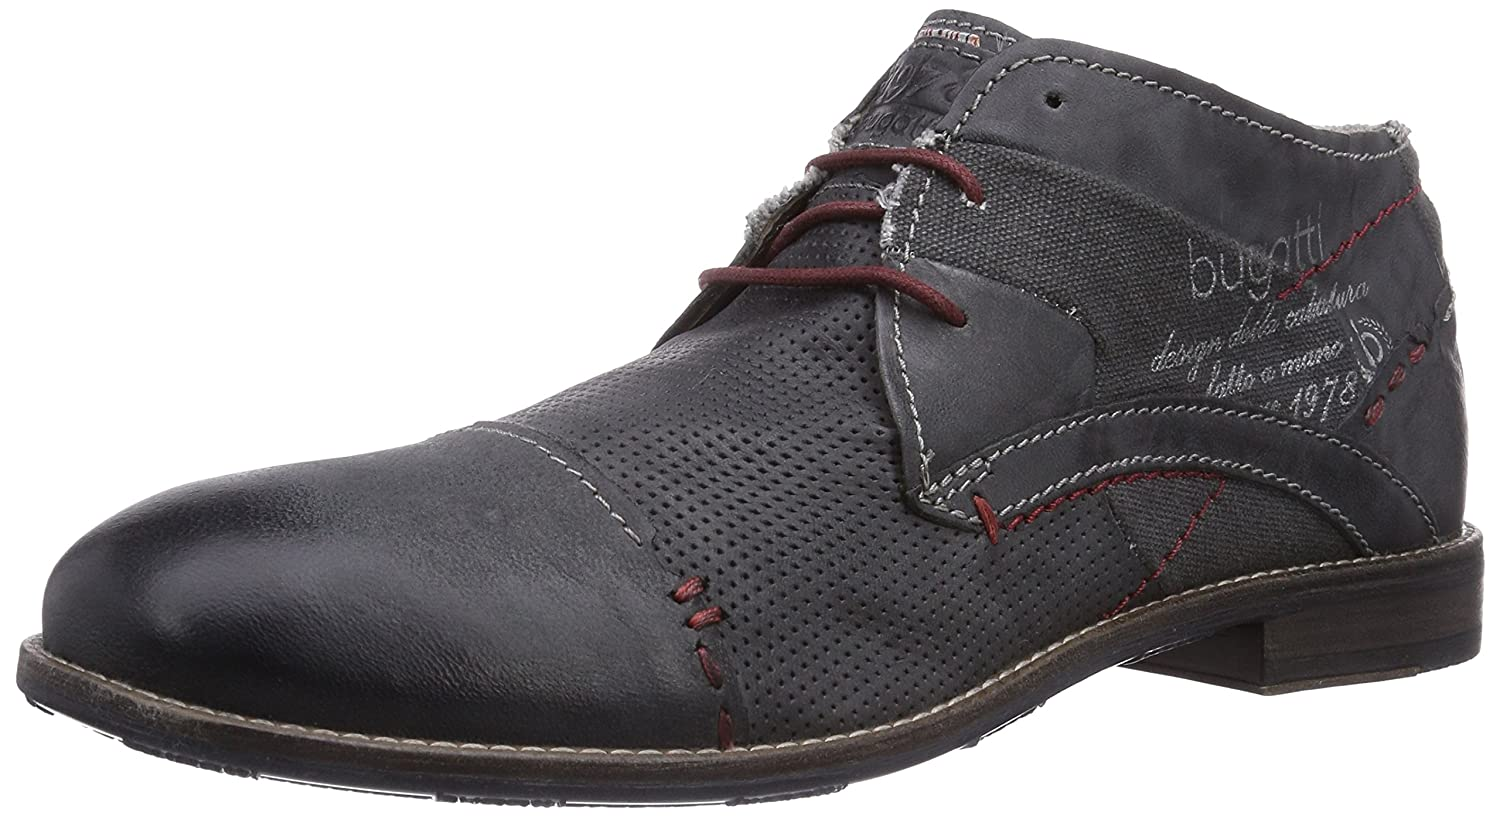 R09021g6, Mens Cold Lined Classic Boots Short Length Bugatti